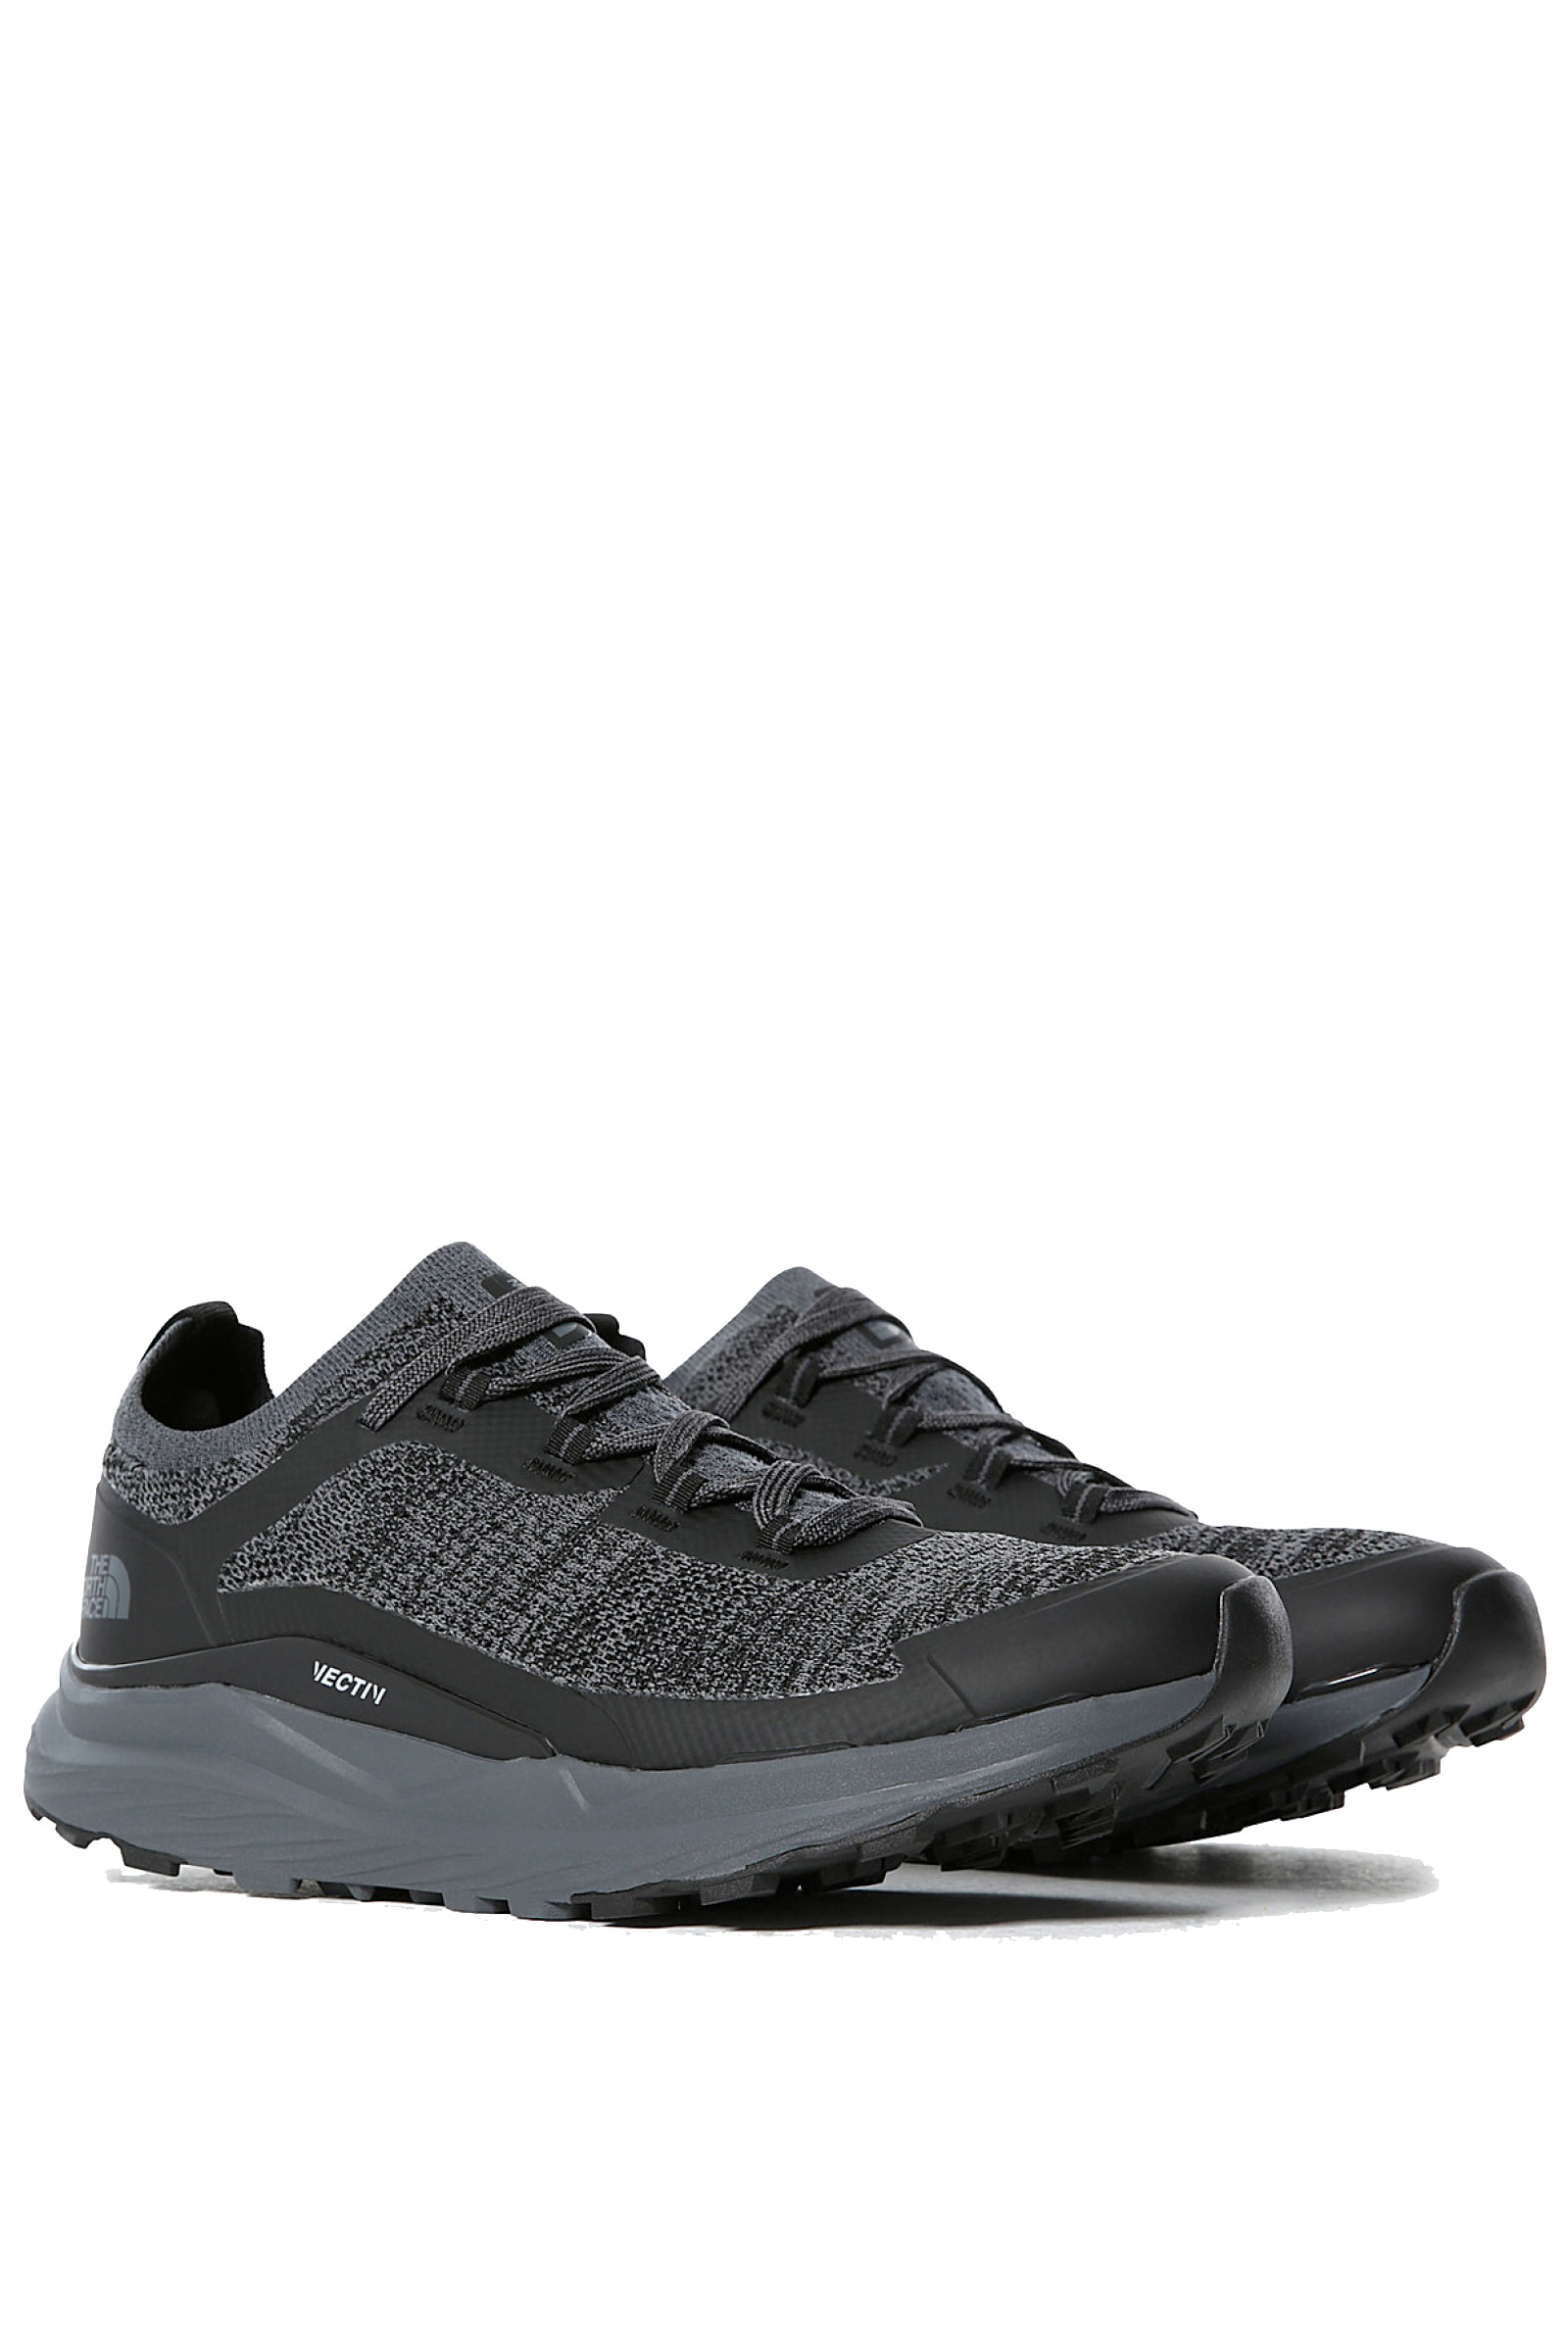 THE NORTH FACE | Shoes | NF0A4T2YKZ21